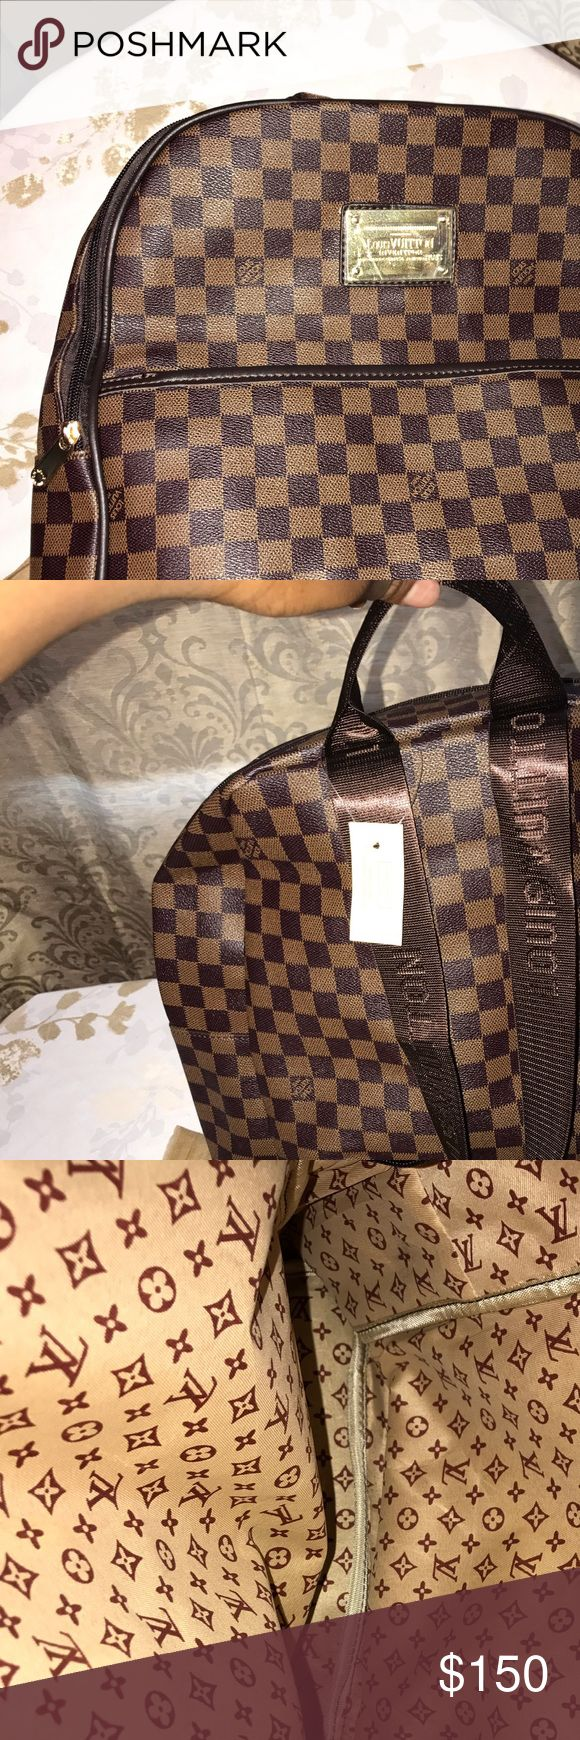 Louis Vuitton Backpack Brown Damier Print Backpack. Price reflects authenticity. Louis Vuitton Bags Backpacks